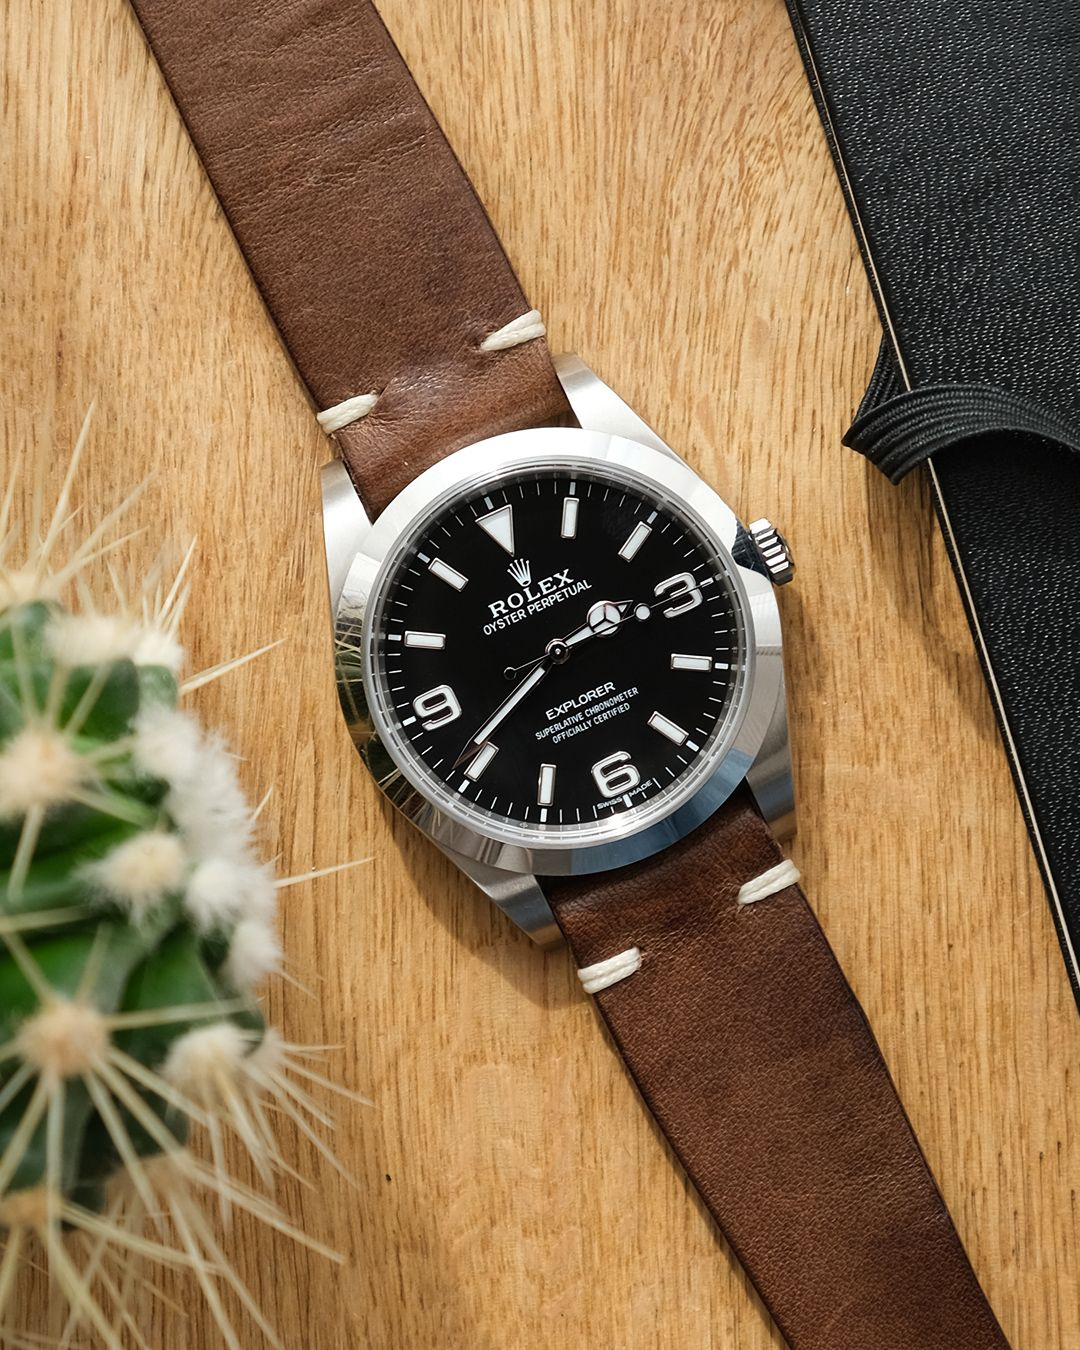 A modern 214270 Rolex Explorer on a brown leather strap